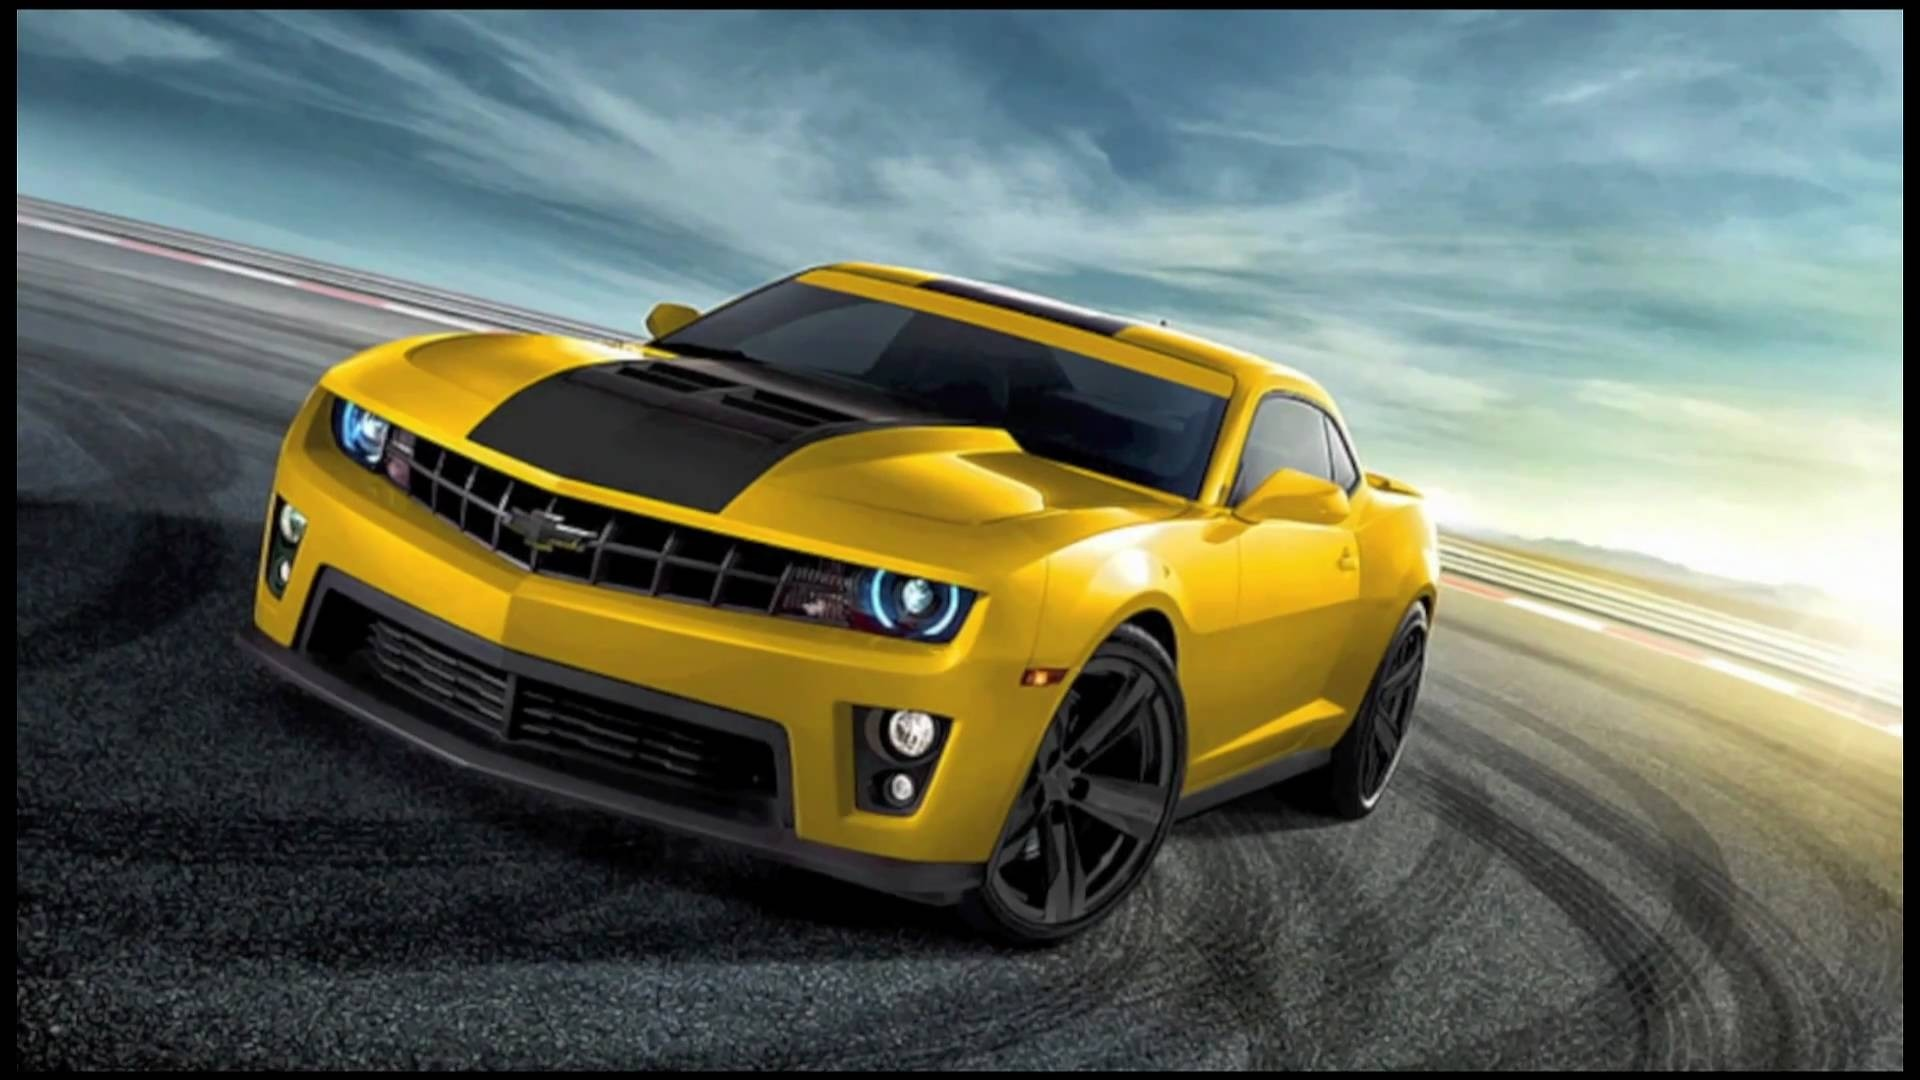 1920x1080 Chevrolet Camaro Wallpaper HD 6 - 1920 X 1080